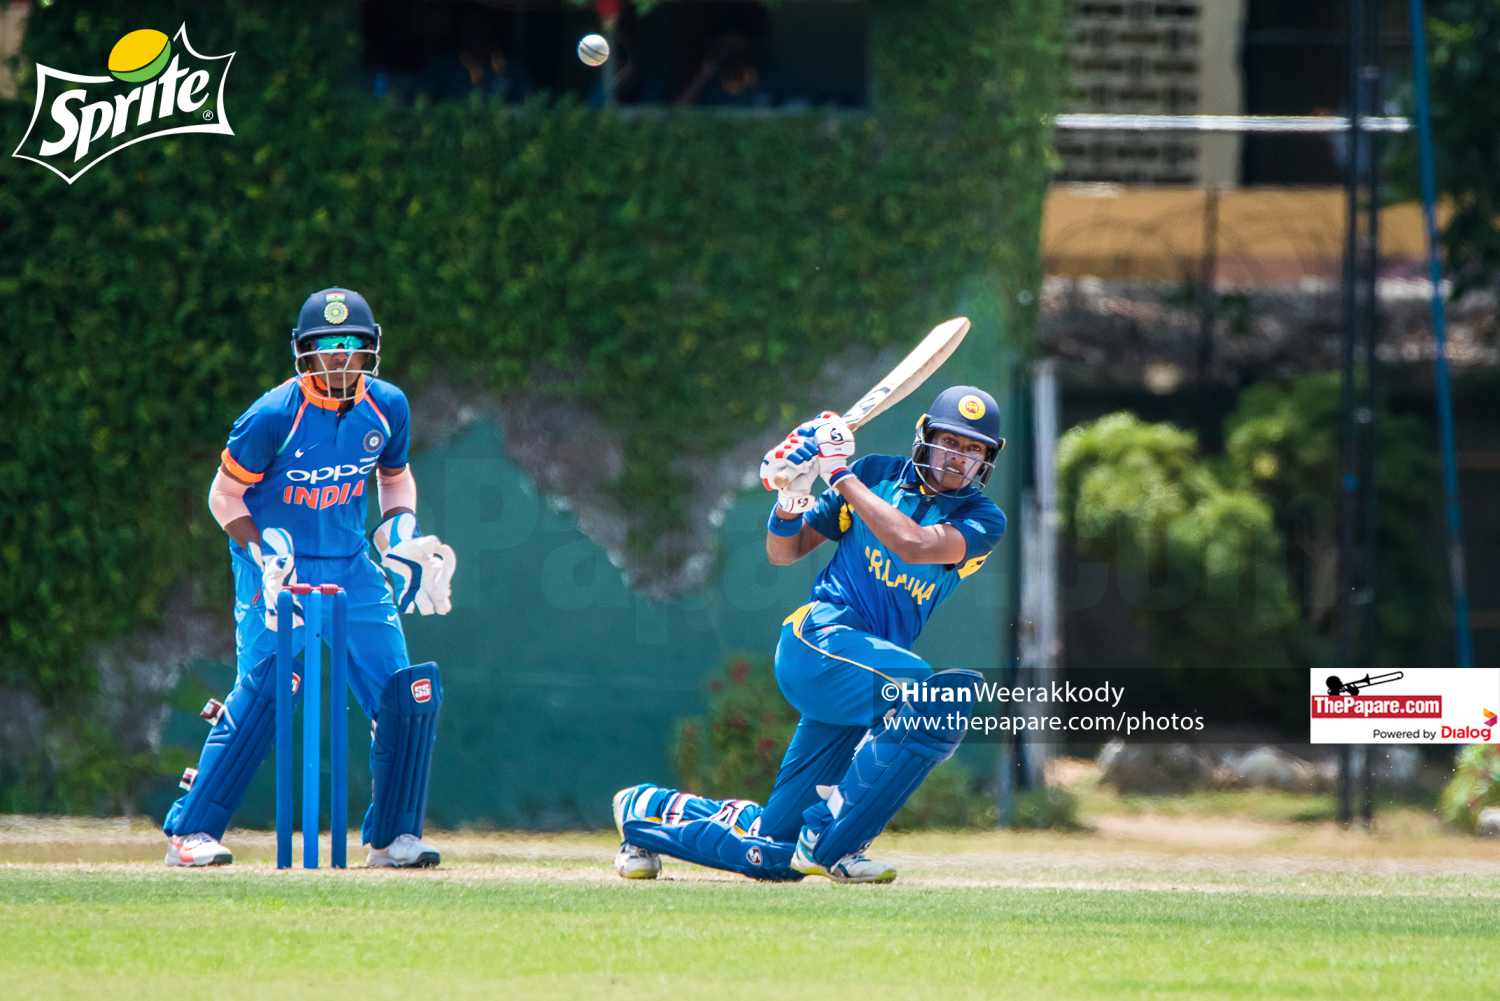 Photos: Sri Lanka U19 vs India U19 | 1st Youth ODI